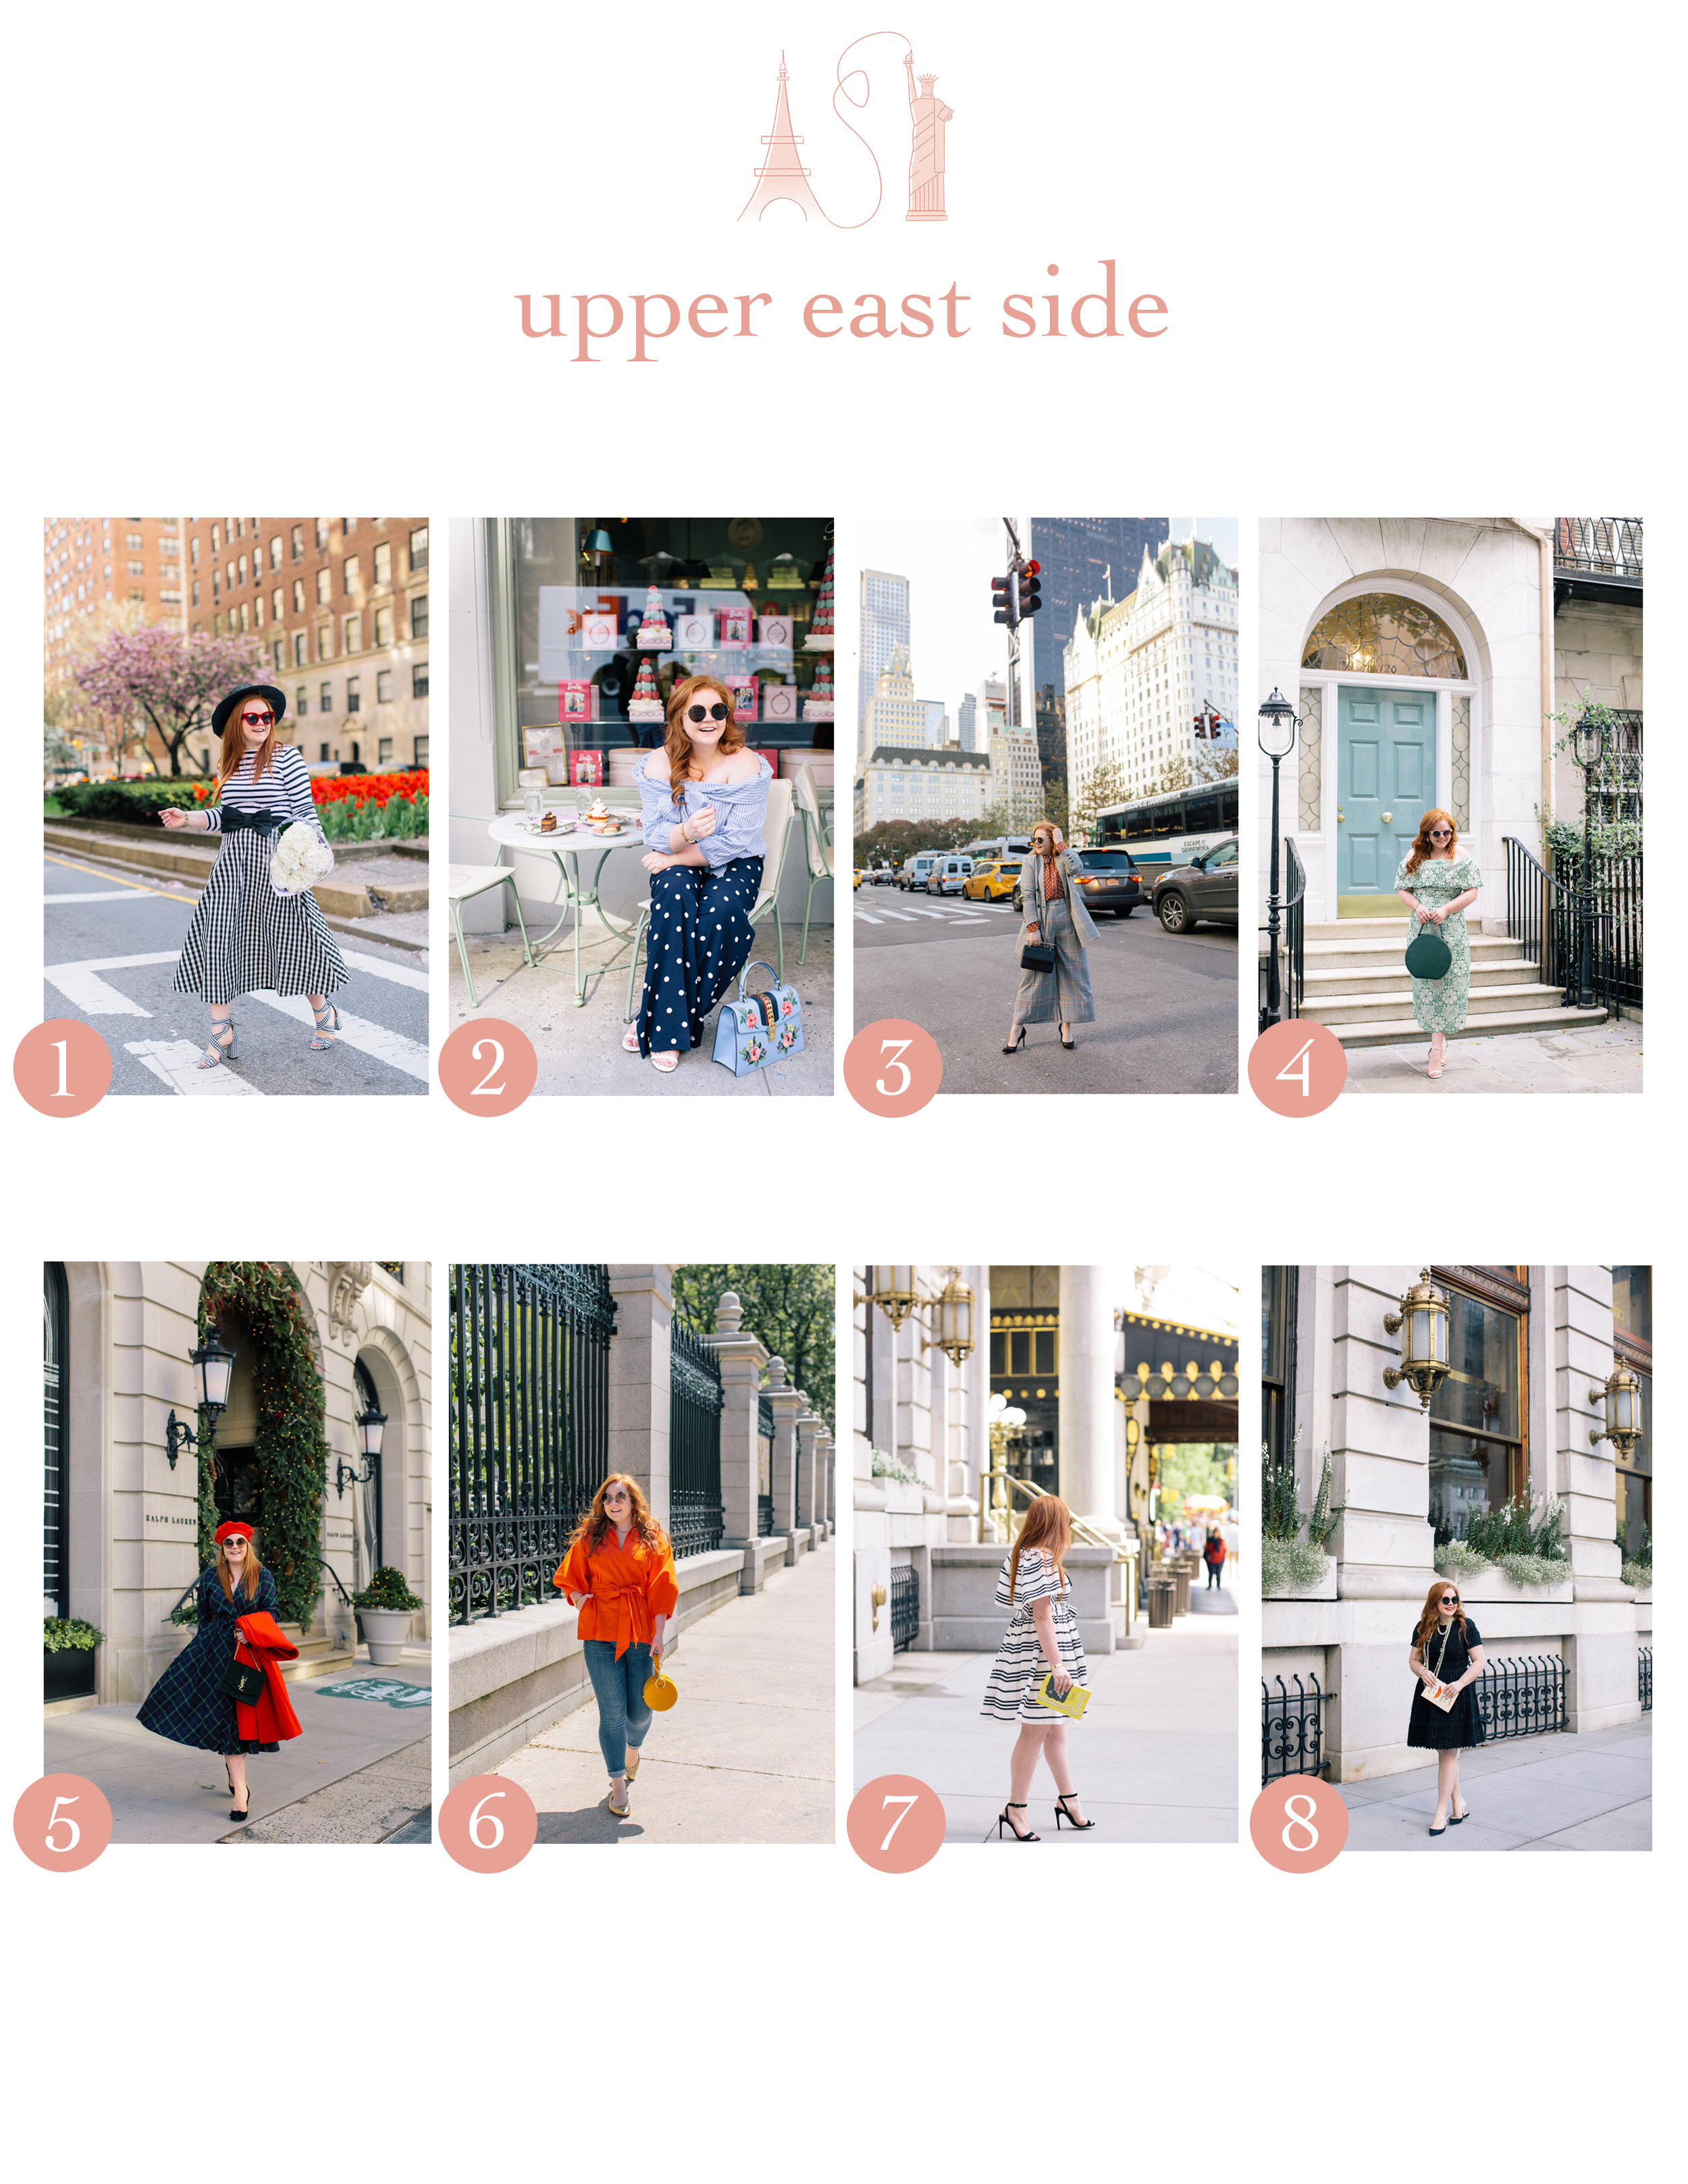 upper_east_side_photo_locations.jpg